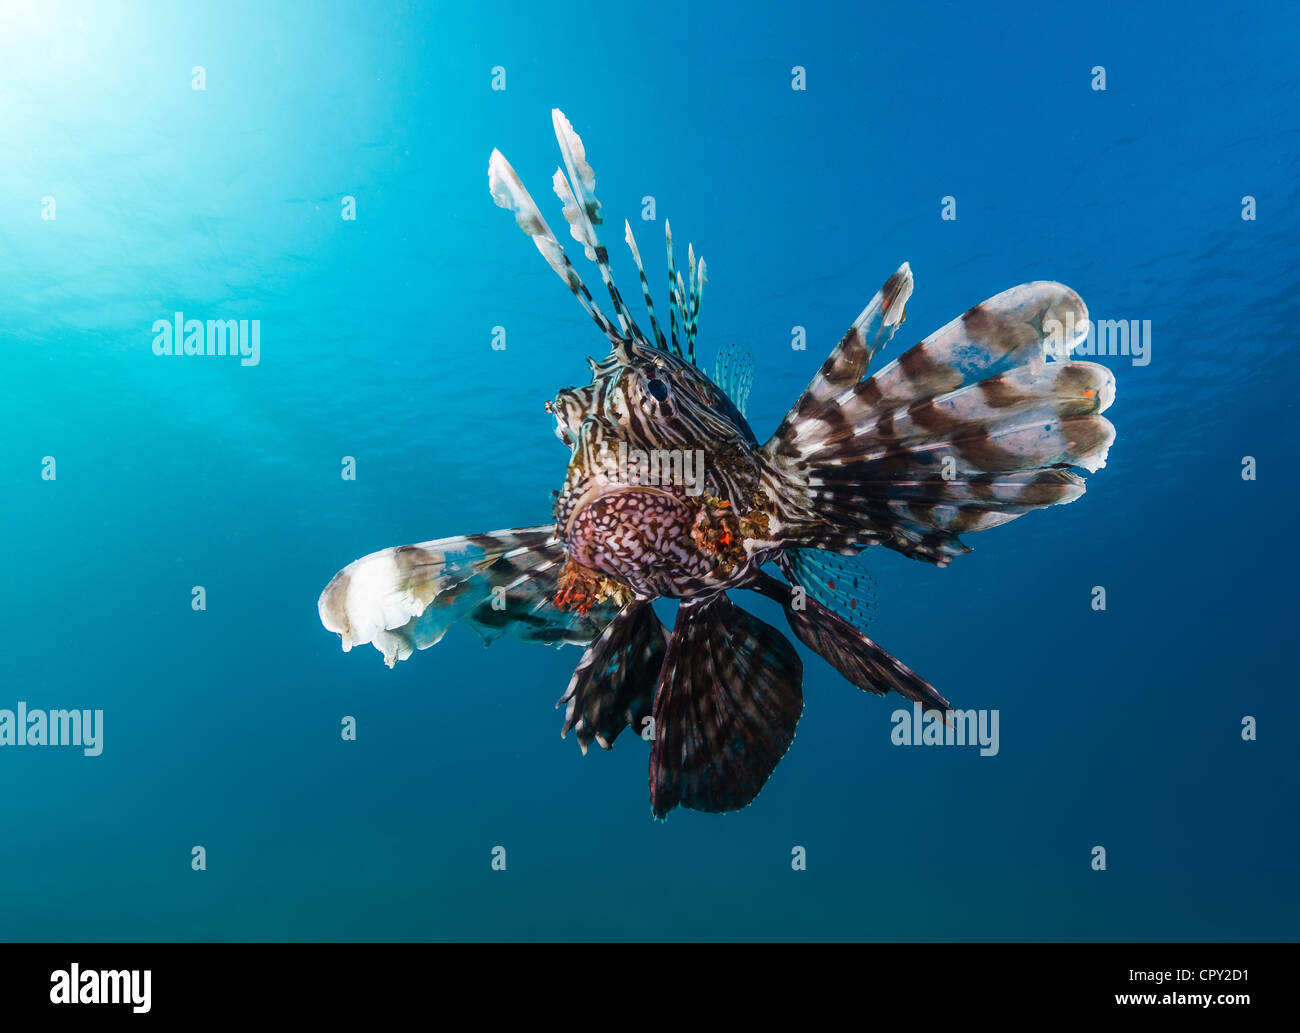 A common lionfish looks angrily at the camera with a blue water background and sunbeams from the nearby surface - Stock Image